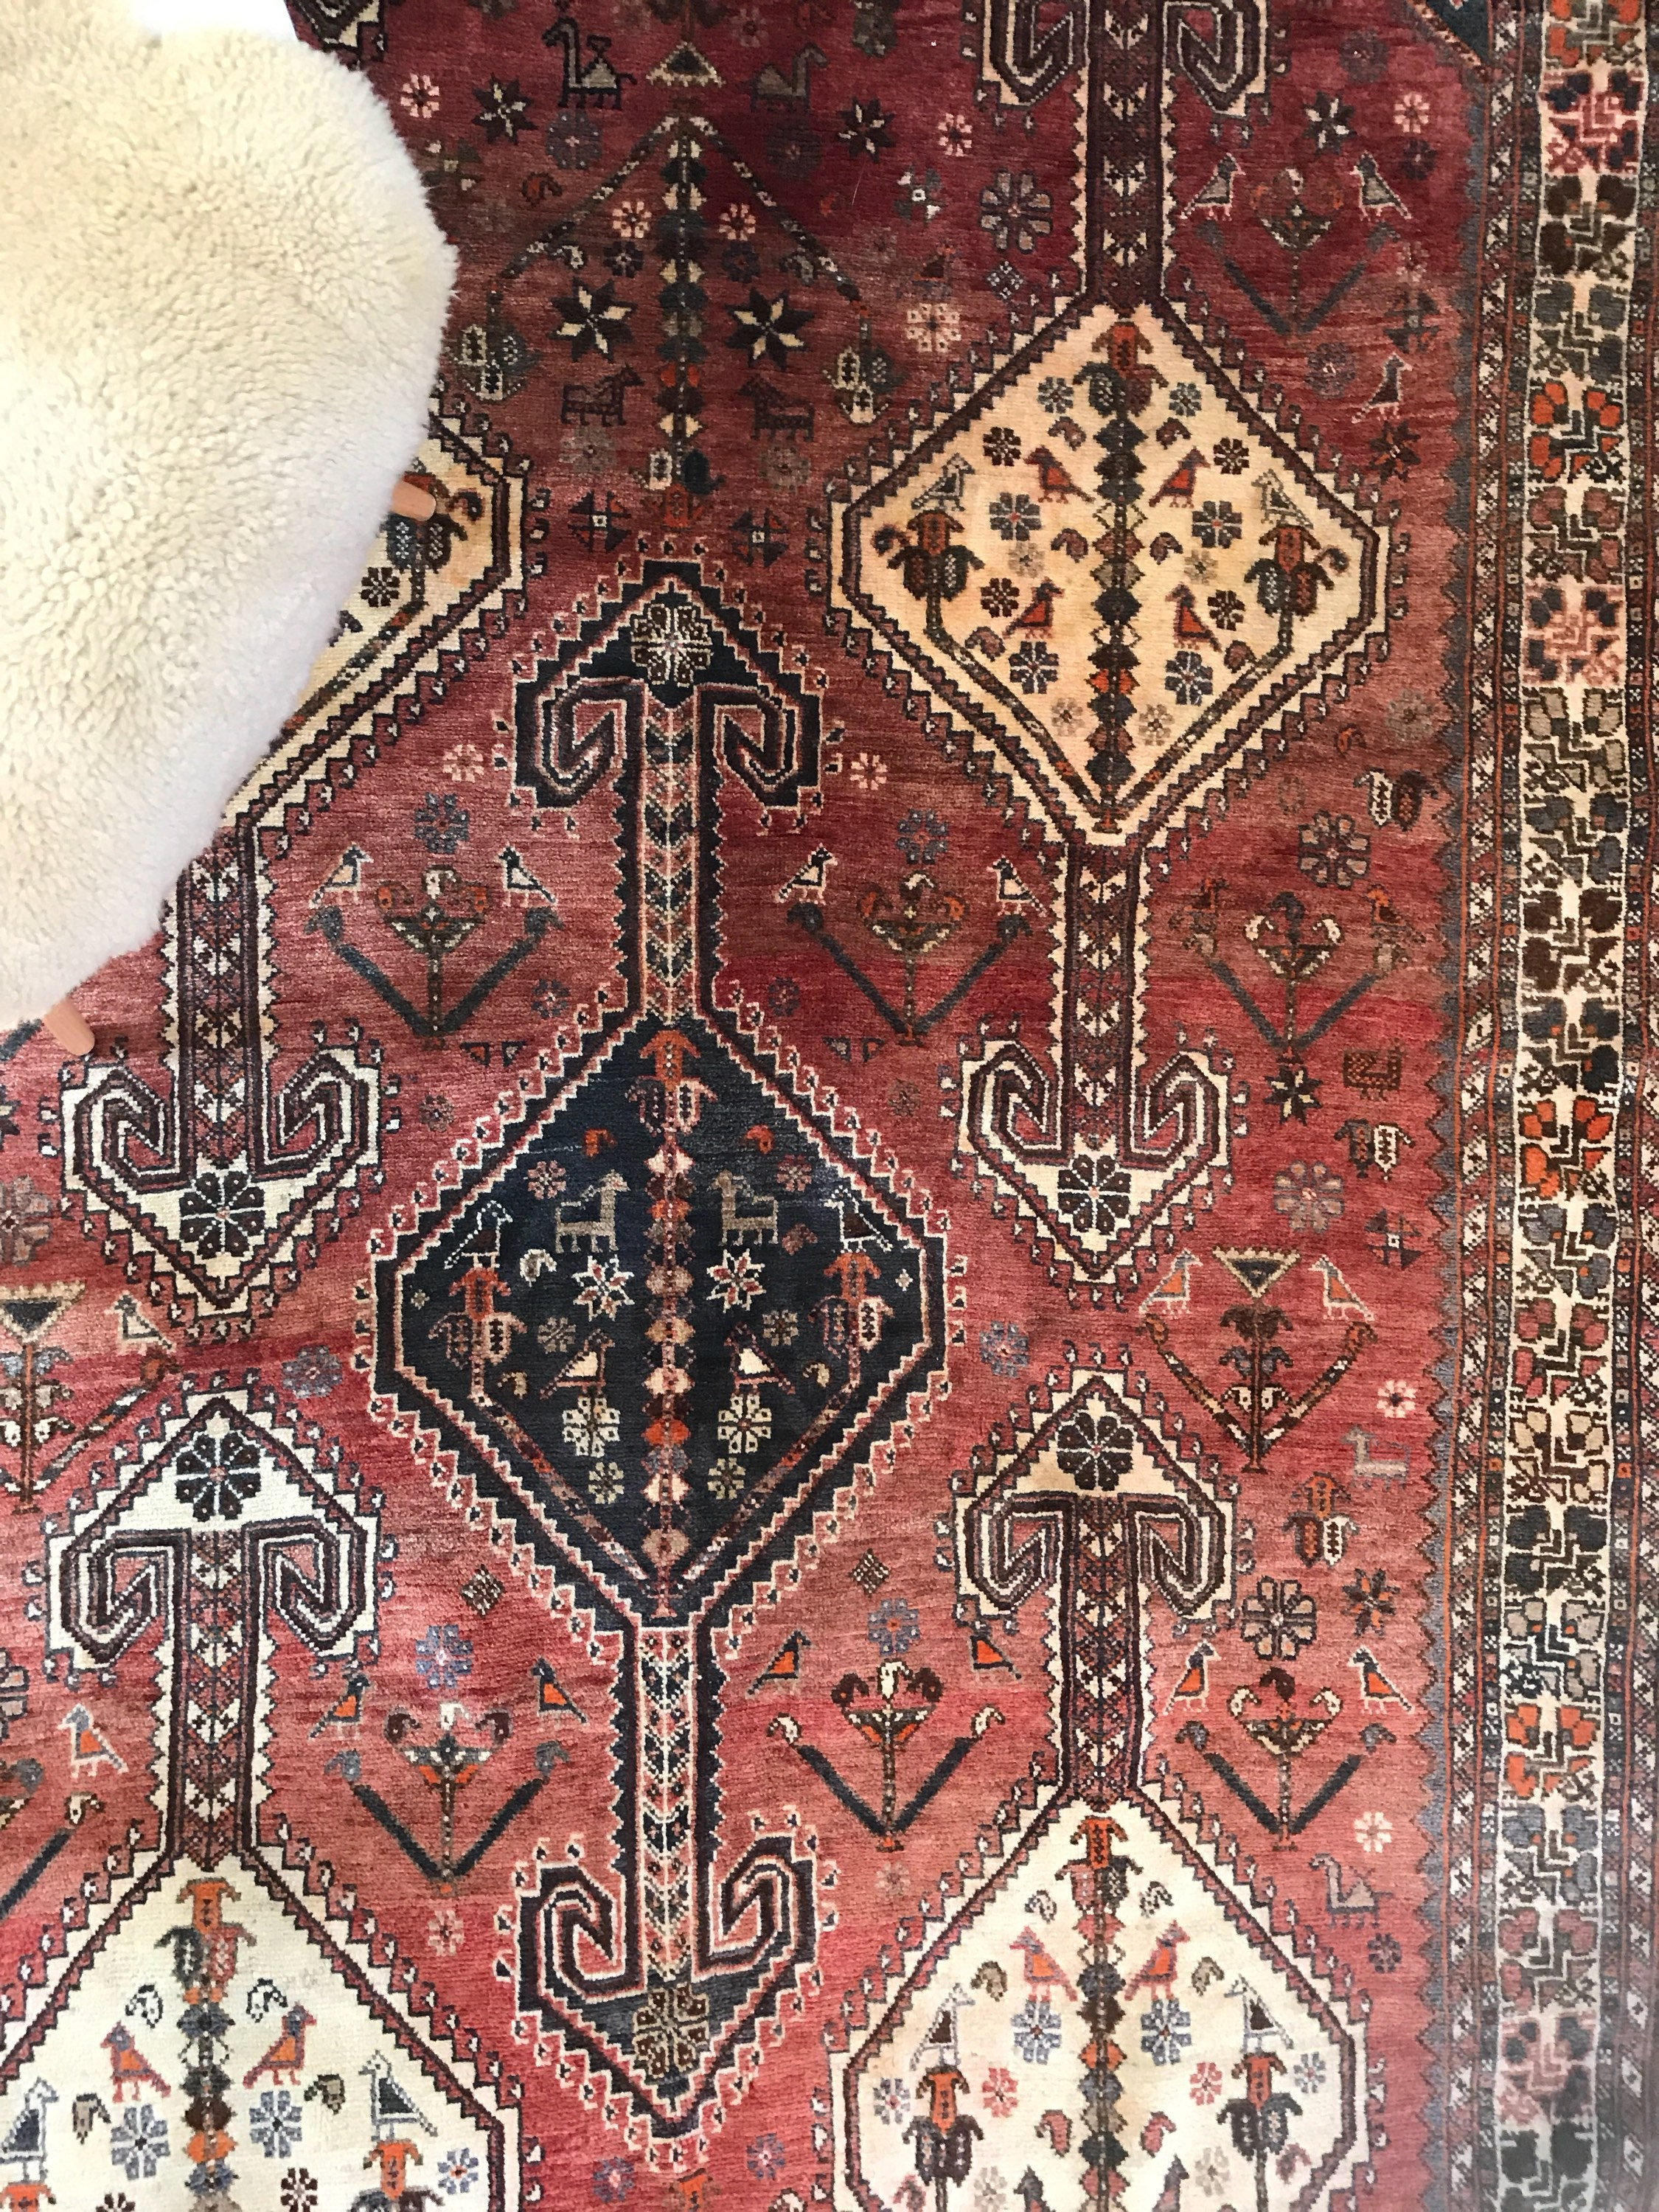 and layered home on found of new bohemian with kept i last store a not price to rug slightly decor the img rugs thrift m so layering smaller in hunting another one month splurge same